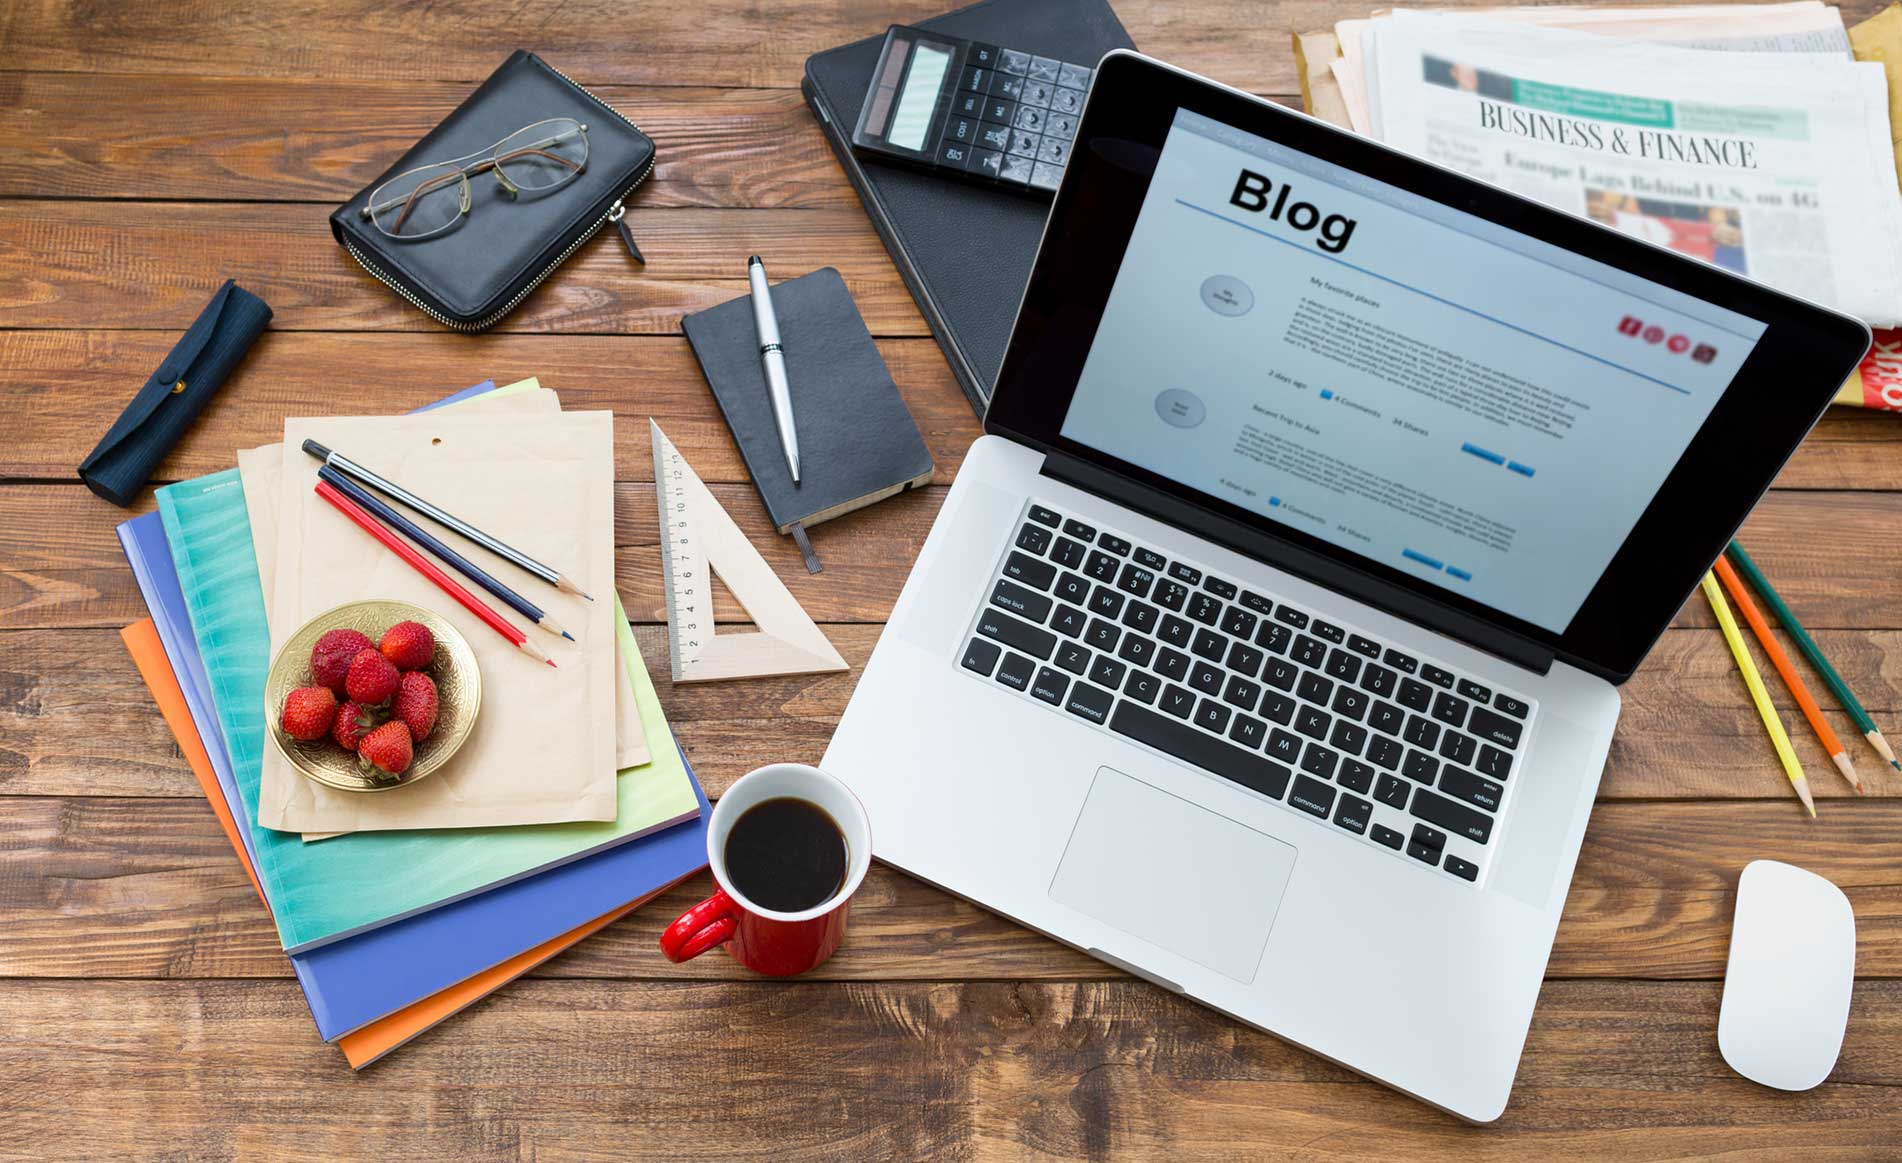 Drive Traffic to Blog from Twitter